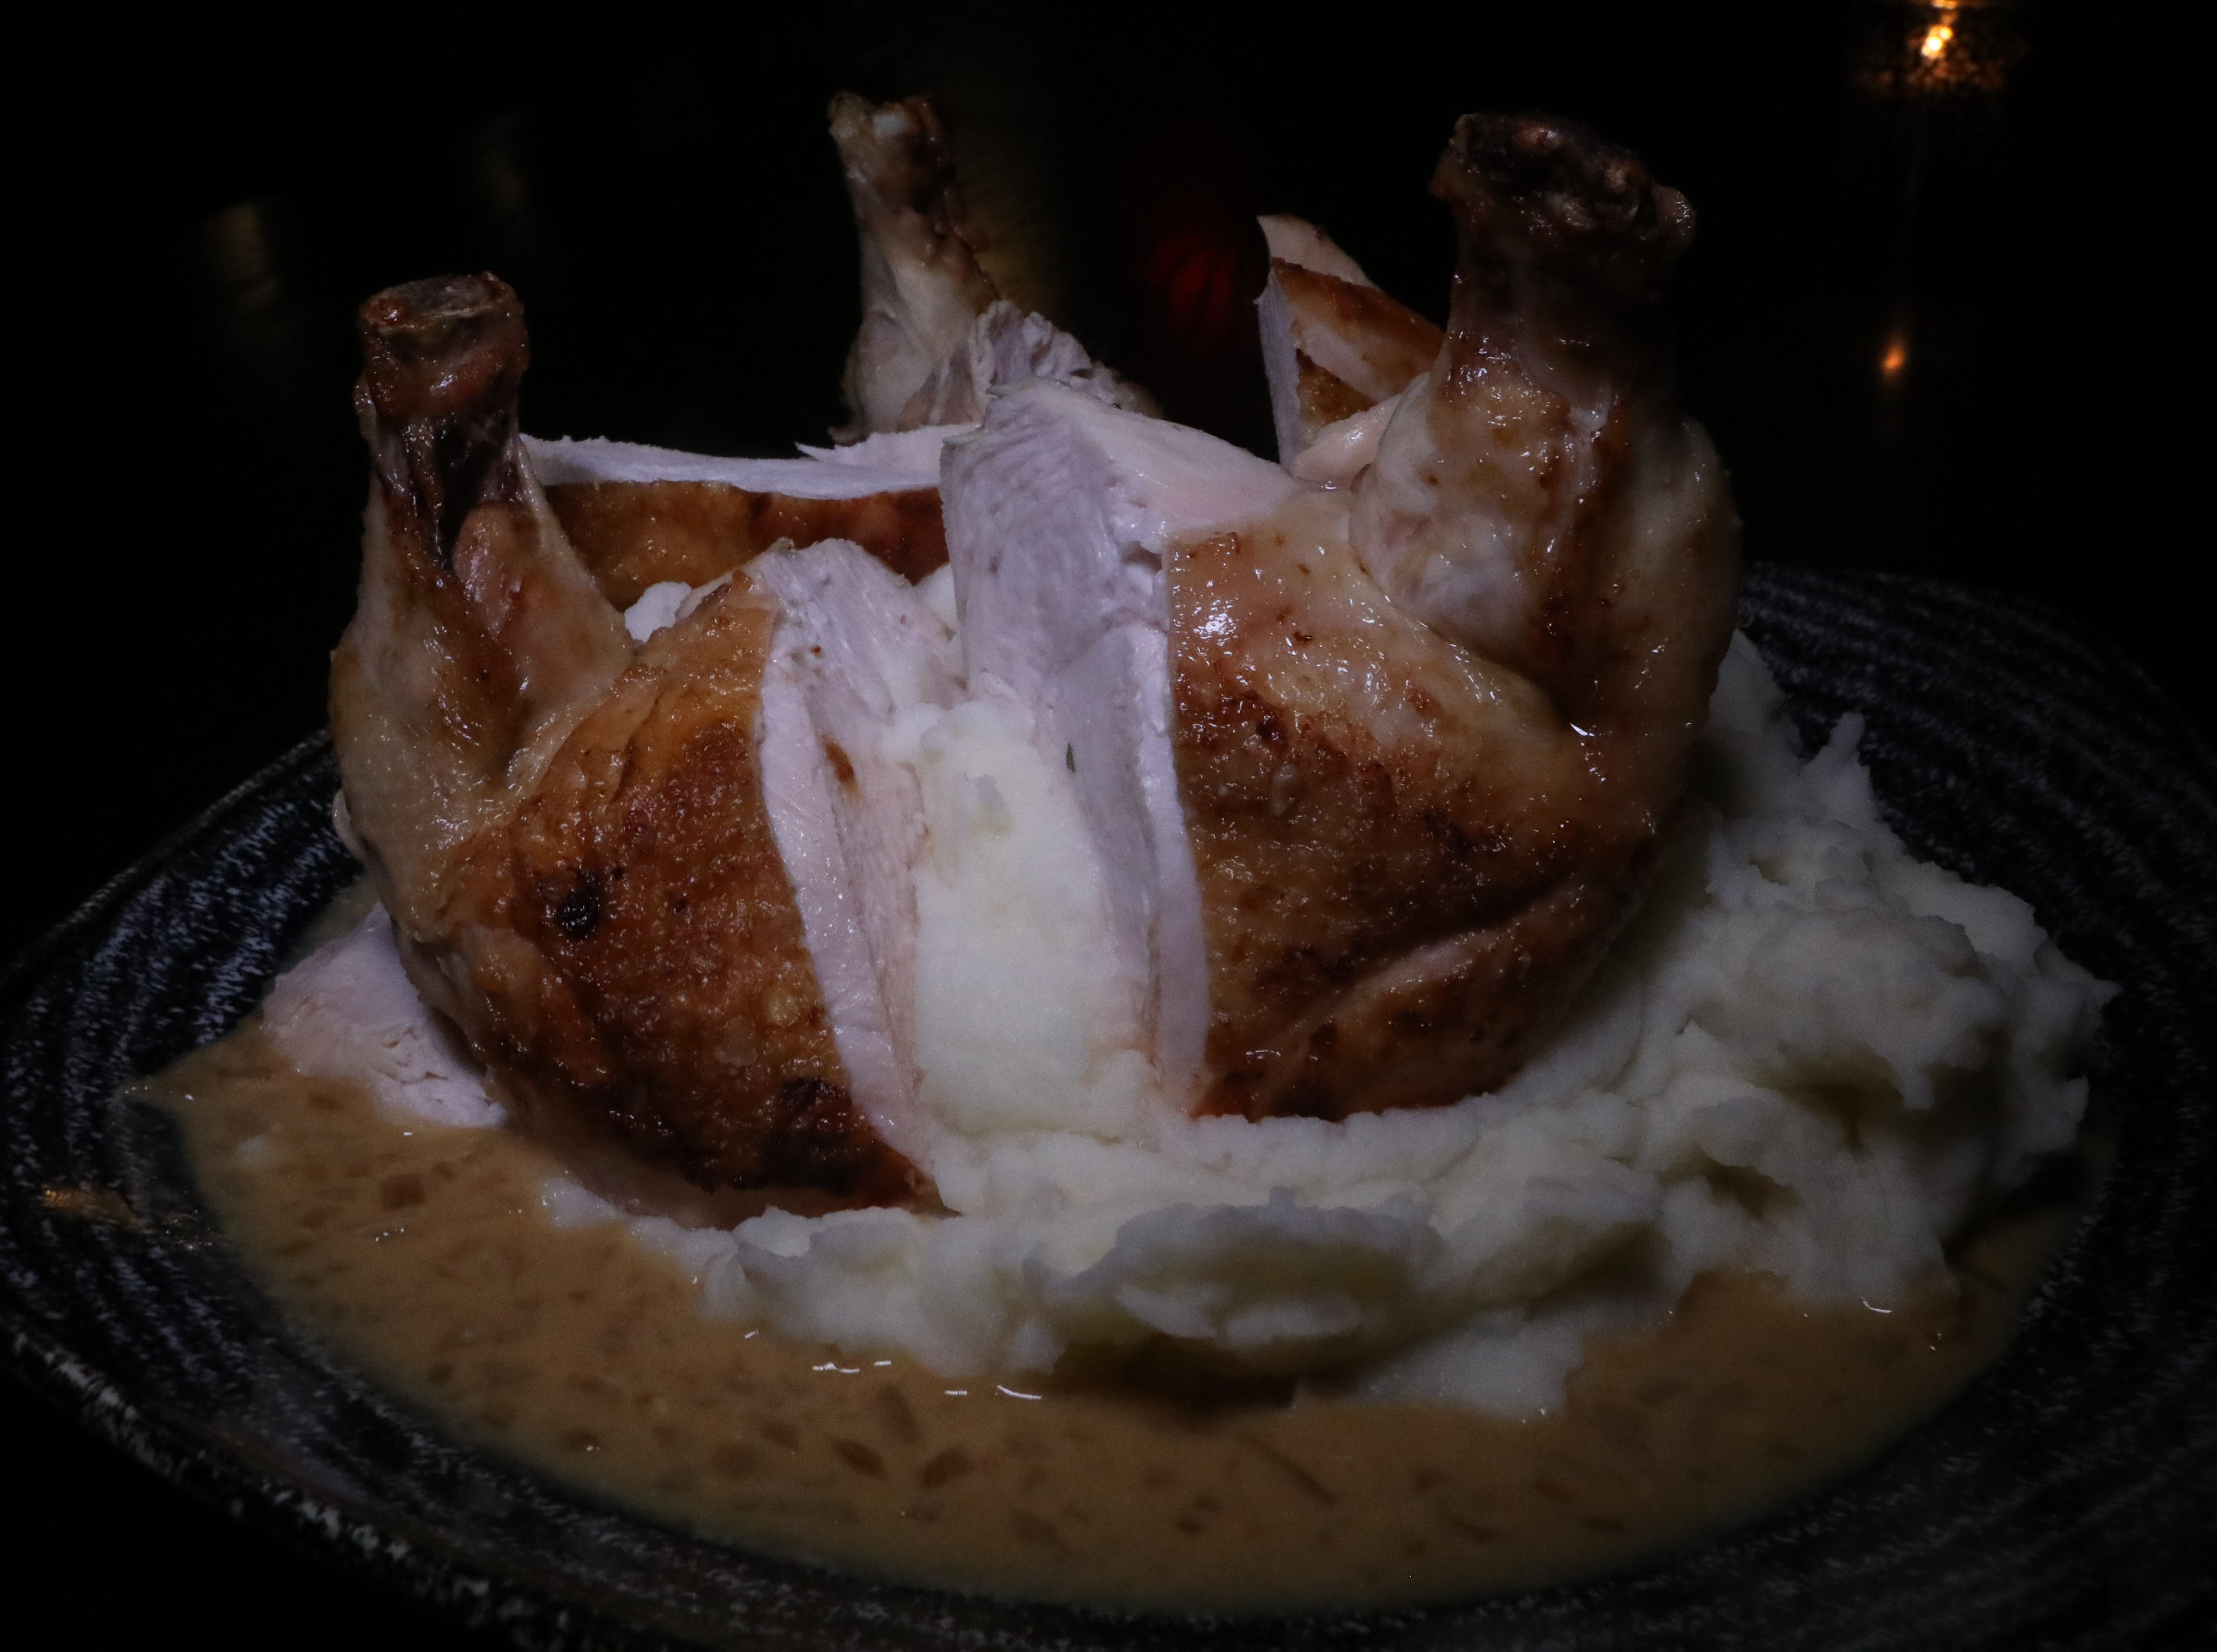 """Organic chicken with shallots and Prosecco over potatoes was prepared by chef Giuseppe Fanelli for """"Dinner with Jeanne"""" at Tredici Social in Bronxville April 9, 2019."""